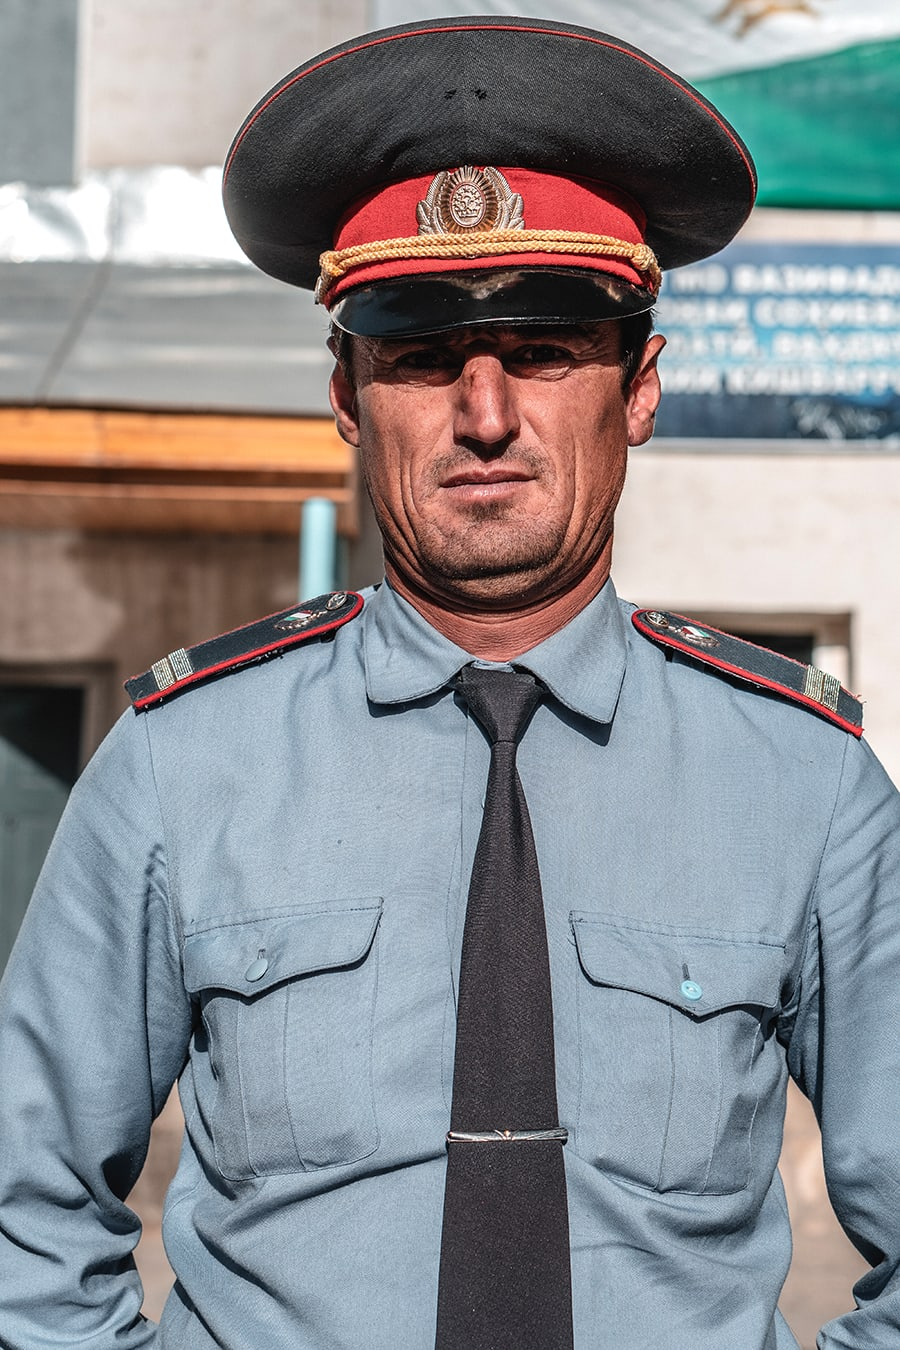 Portrait of a police officer in Khorog, Tajikistan along the Pamir Highway.